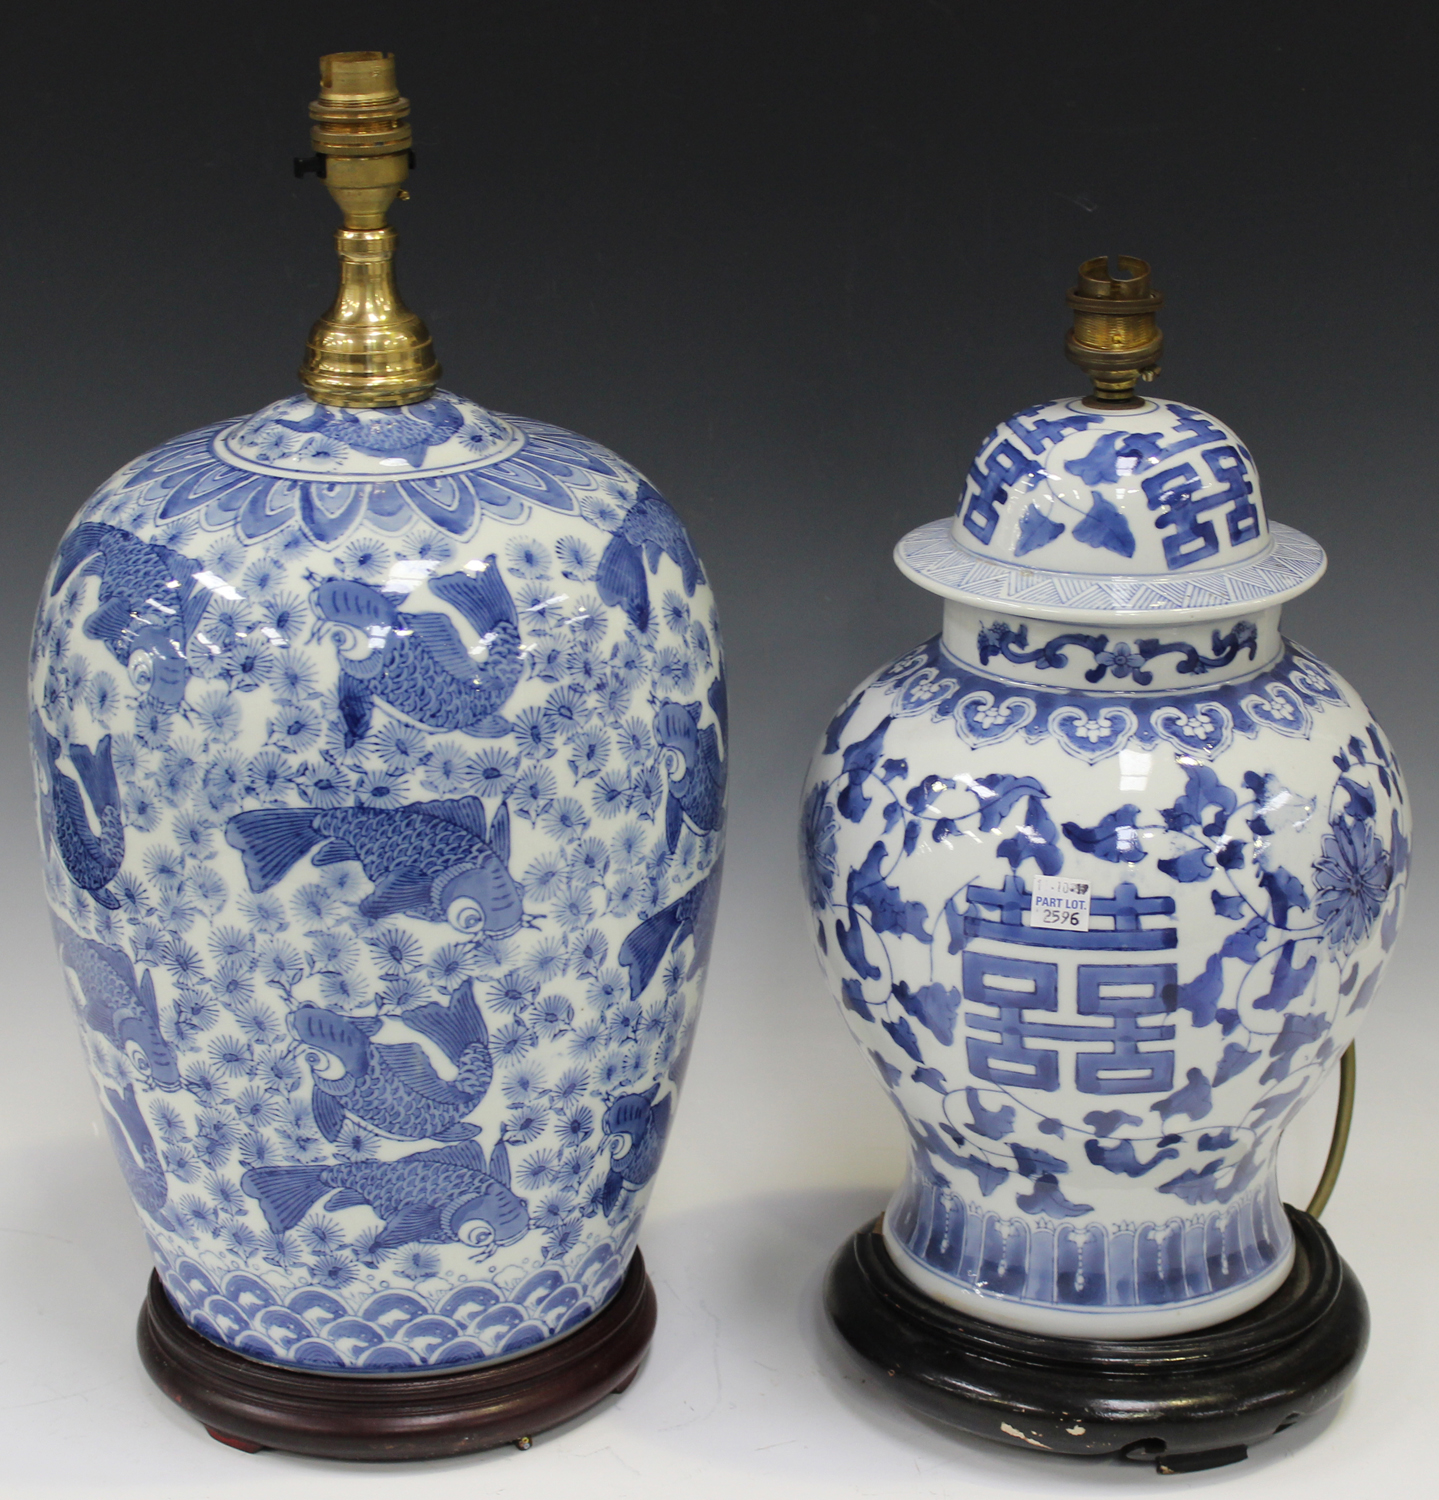 Lot 2596 - A modern Chinese blue and white transfer printed porcelain table lamp, decorated with overall